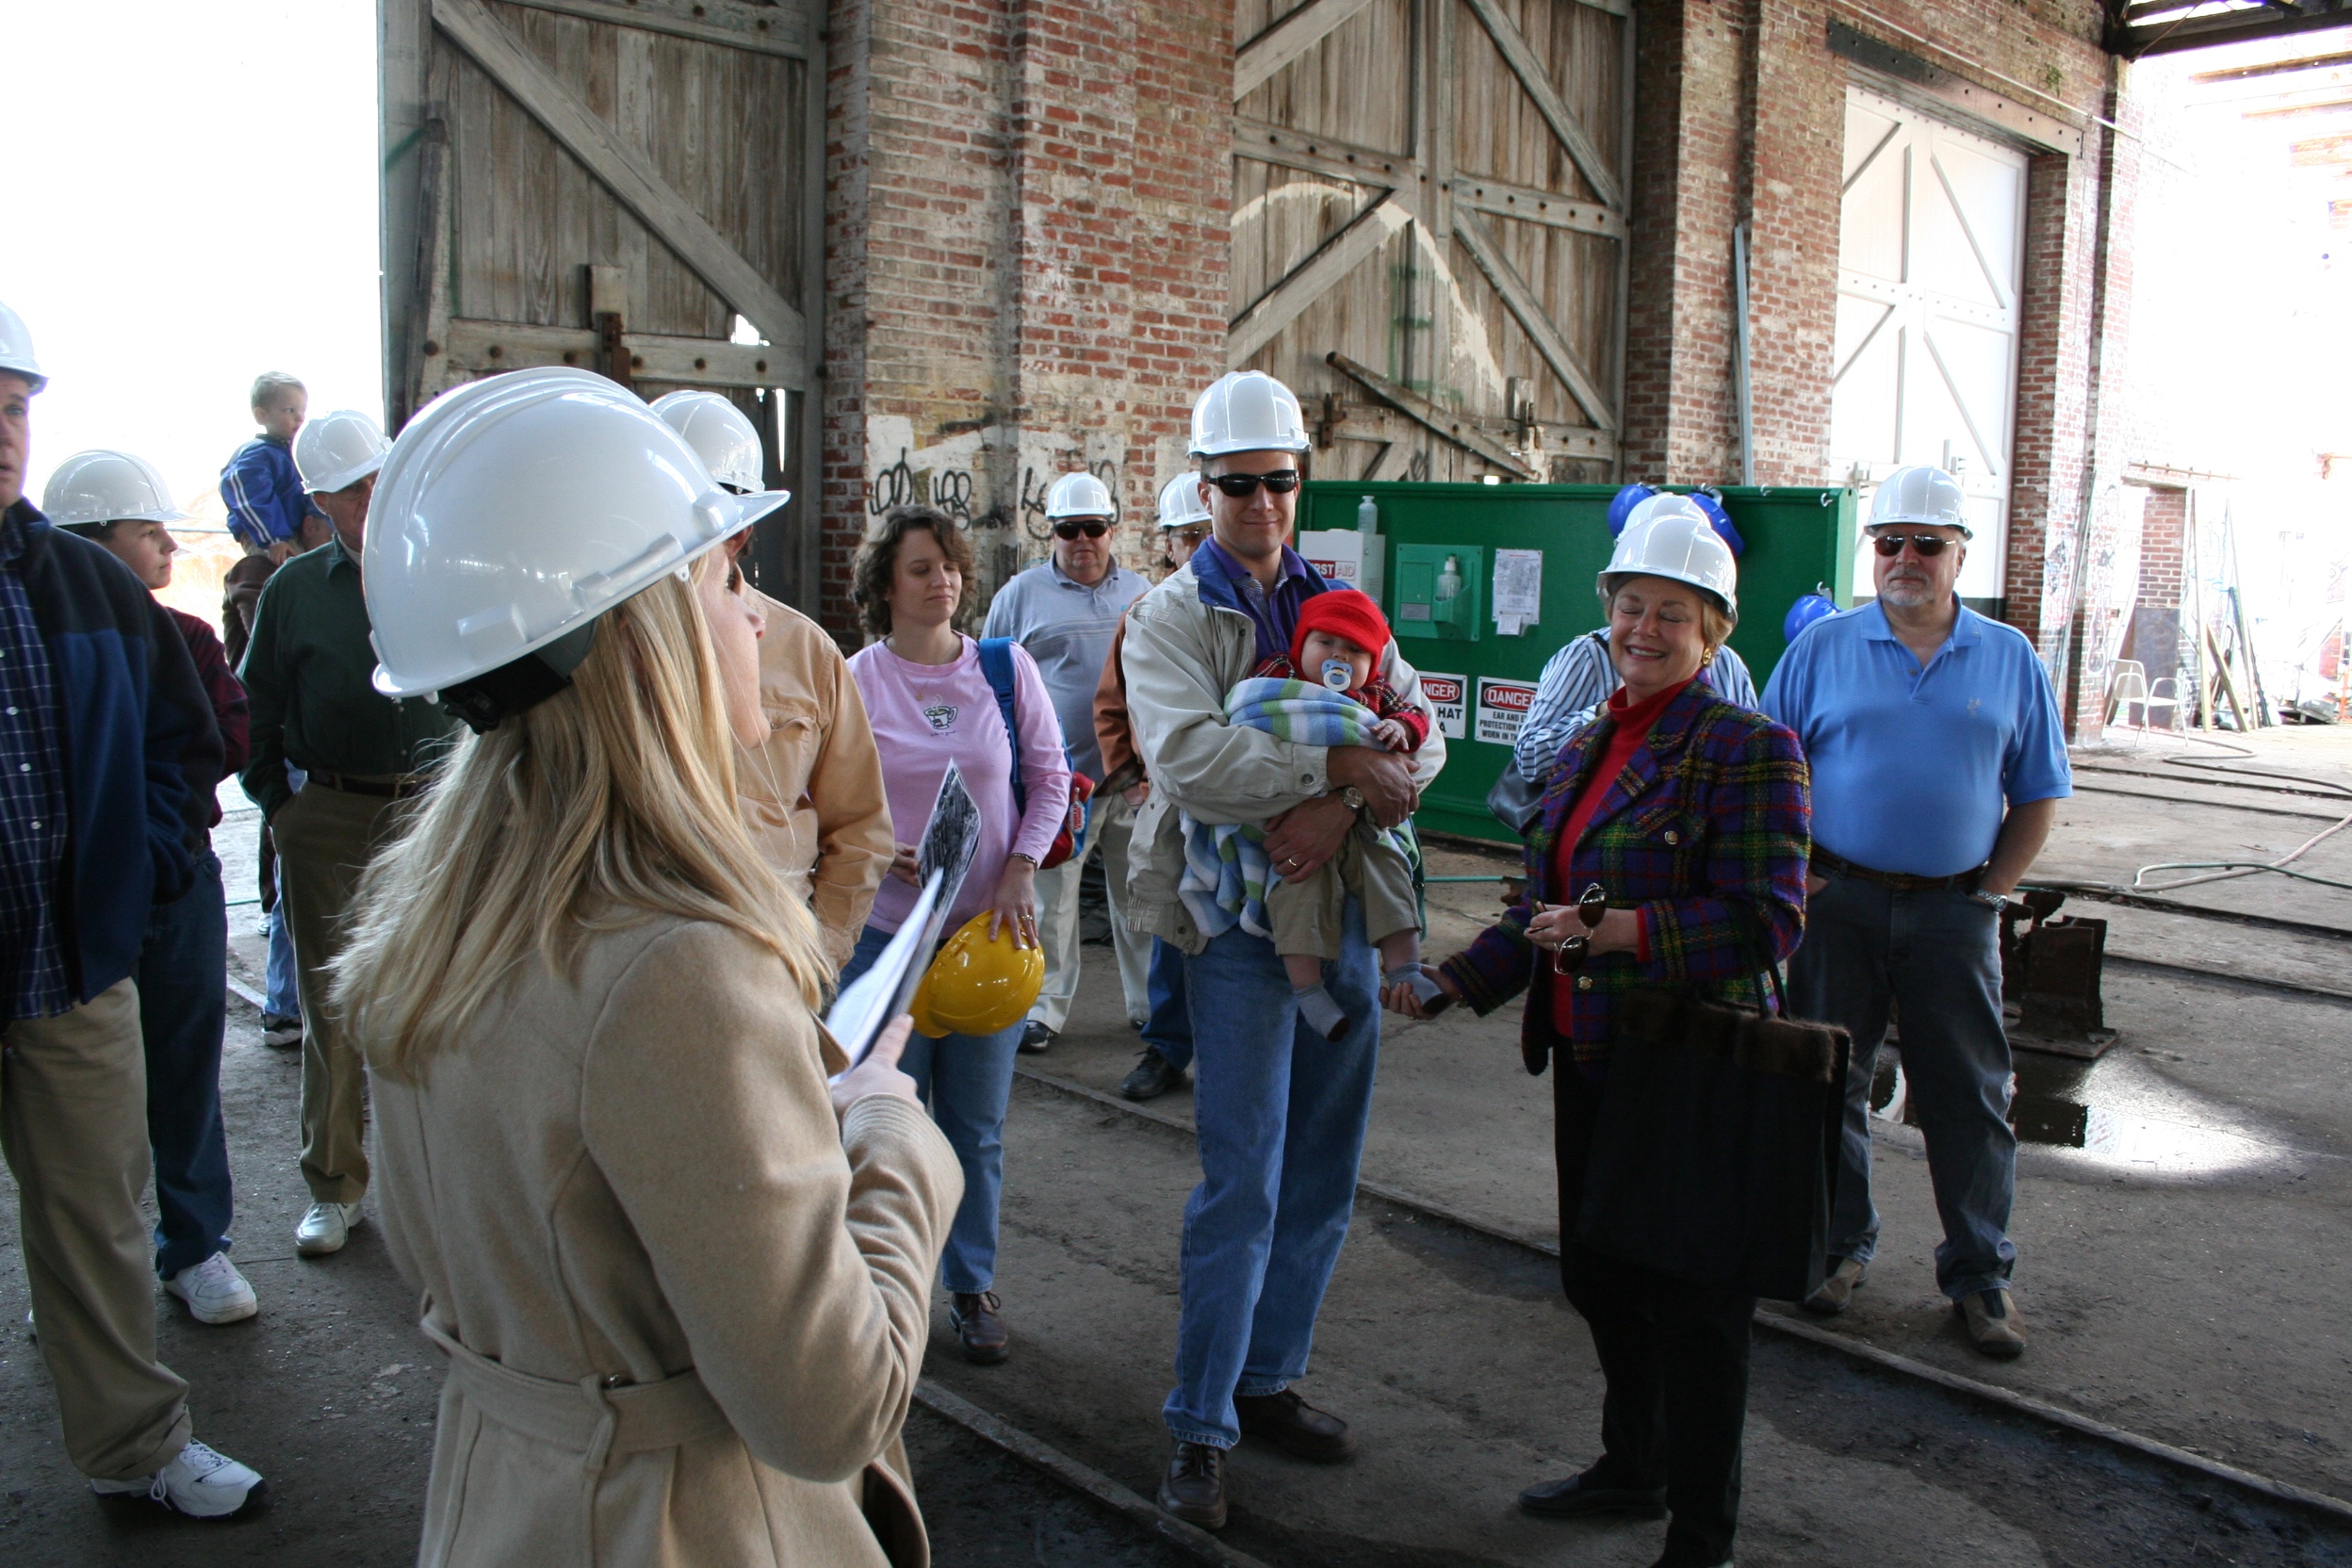 A hard hat tour of the Roundhouse Railroad Museum in Savannah, Georgia, a National Historic Landmark.